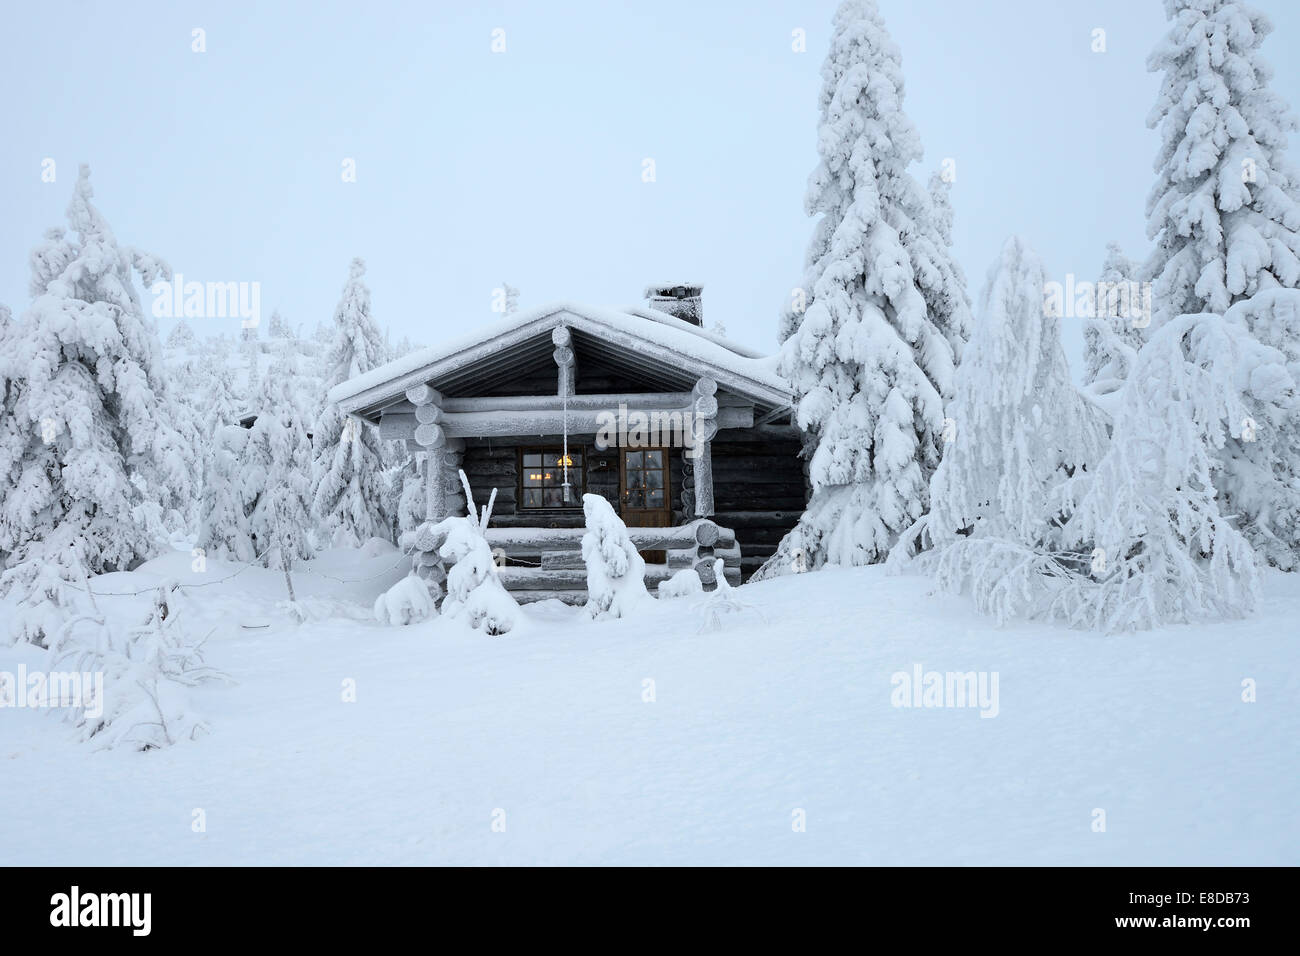 Finnish log cabin in the snow-covered landscape, Iso Syöte, Lapland, Finland Stock Photo